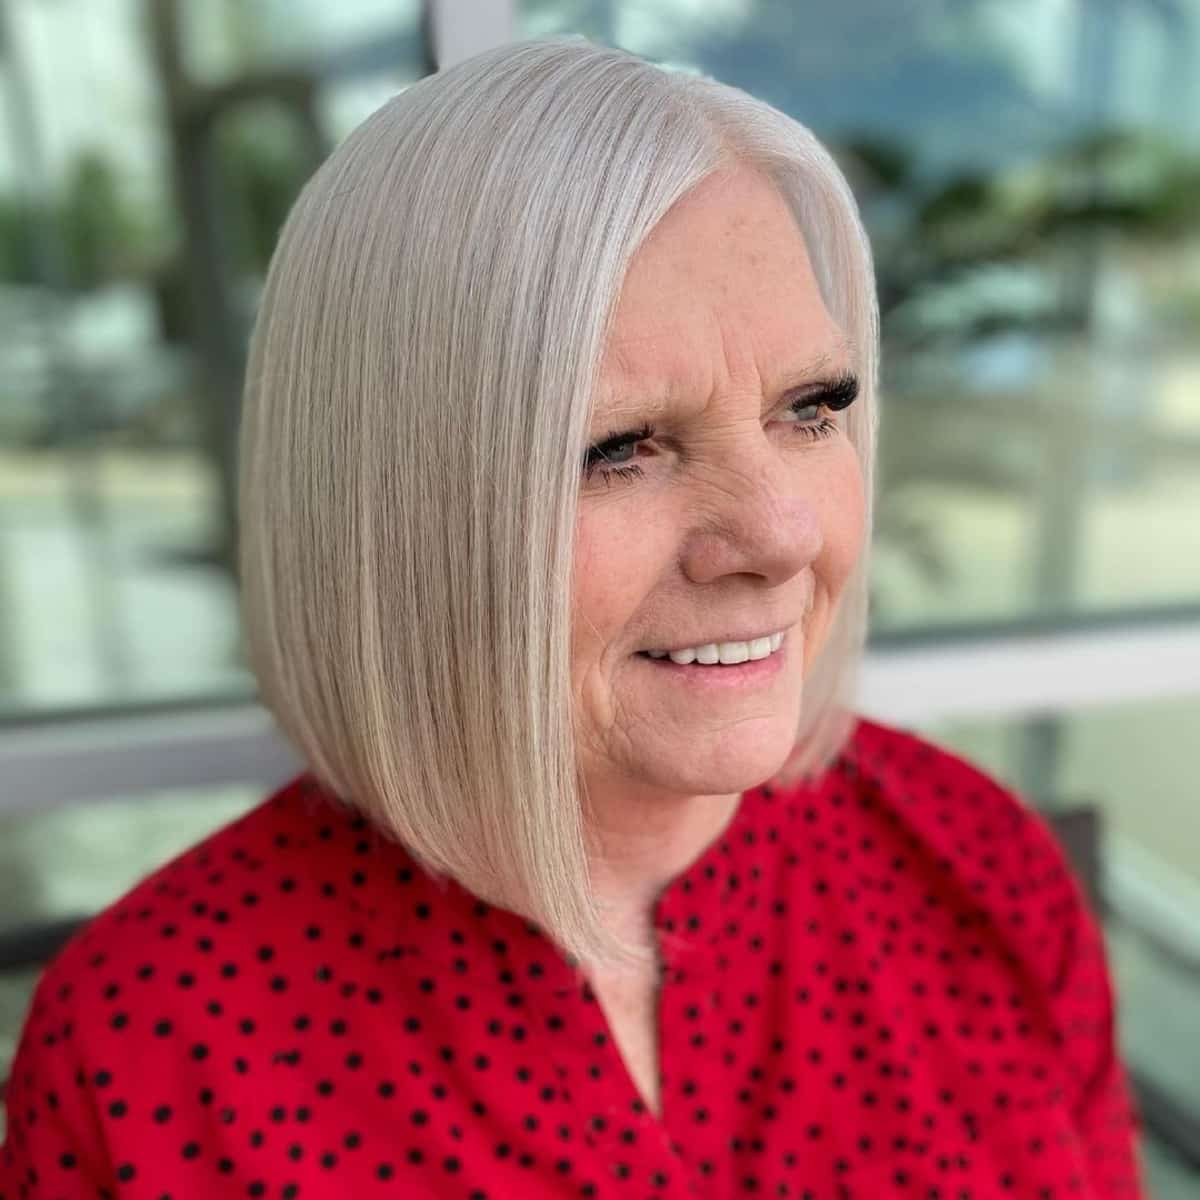 24 Edgy Hairstyles for Women Over 60 Who Want a Young & Mod Look